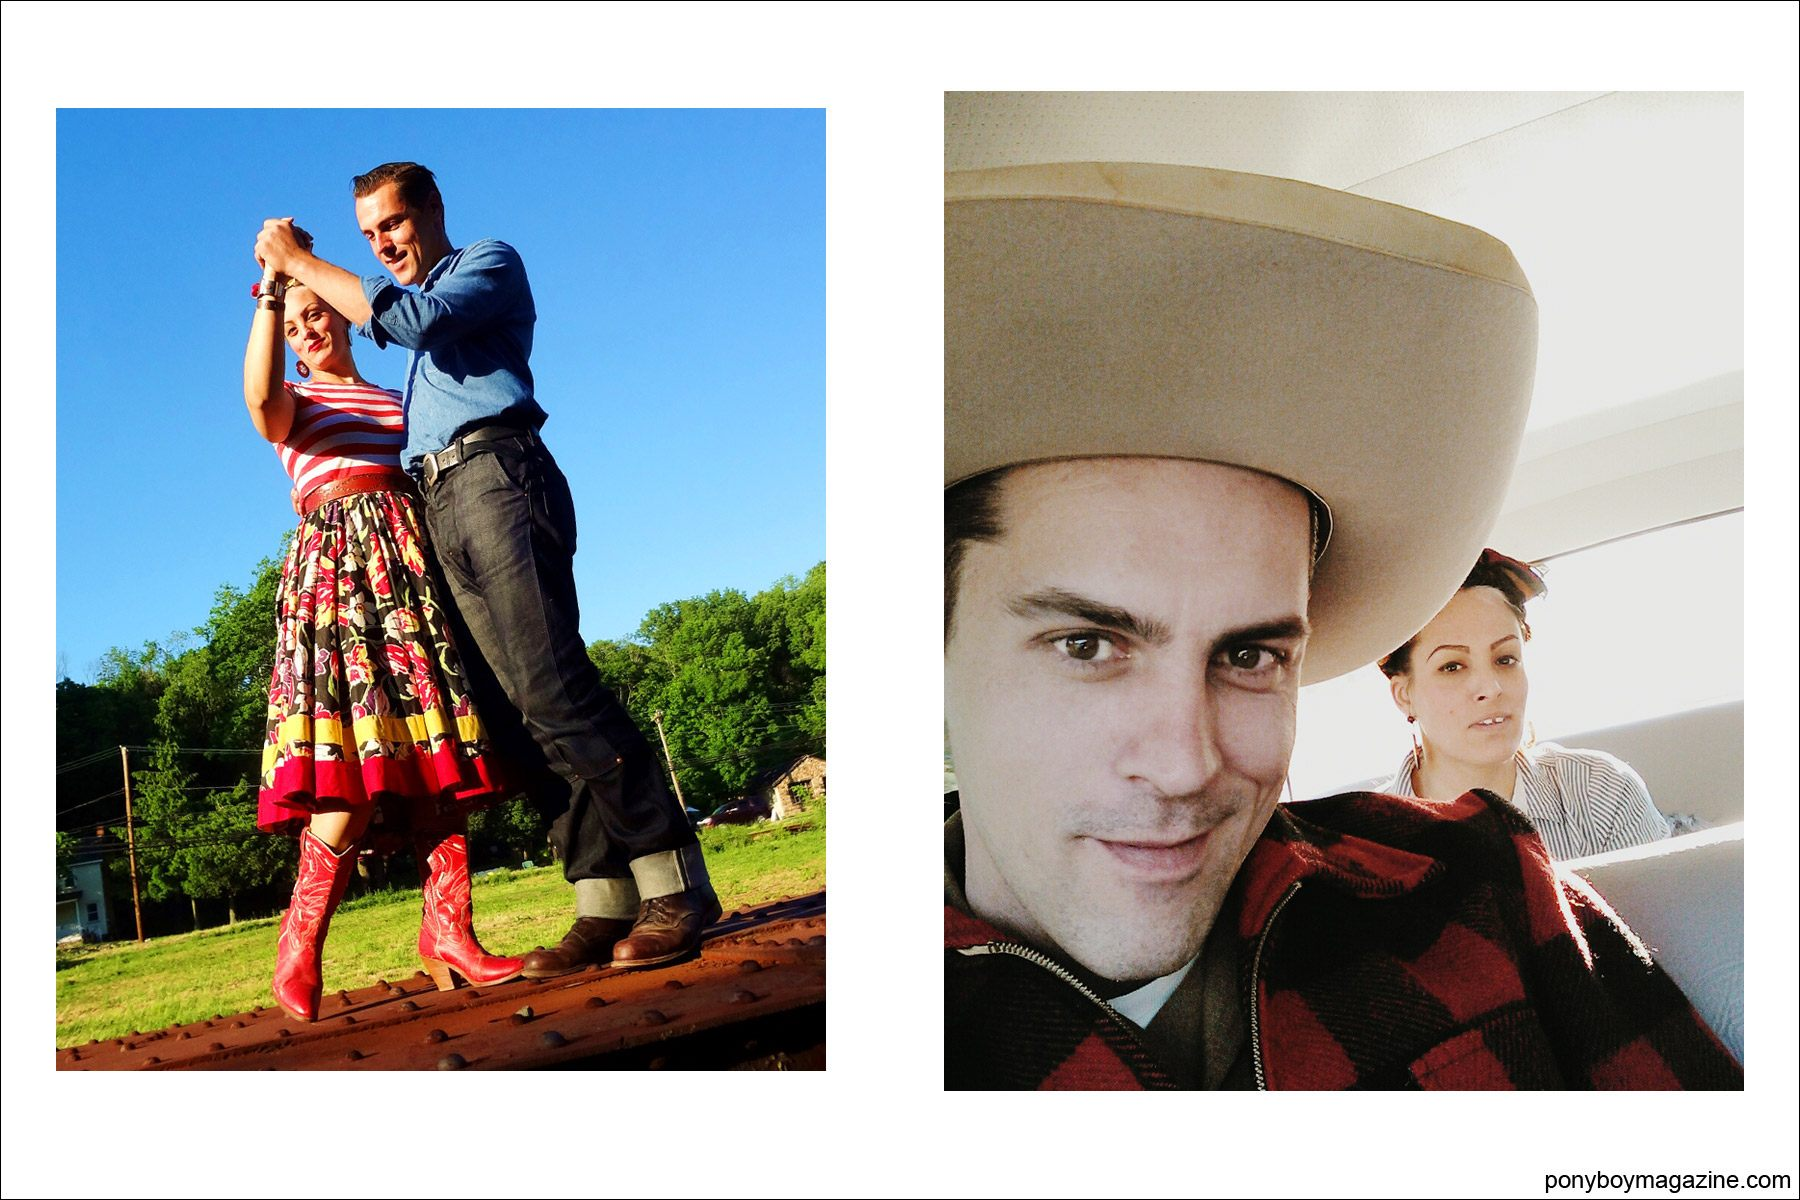 Photos of Jim and Tamara Landwehr, for Ponyboy Magazine.